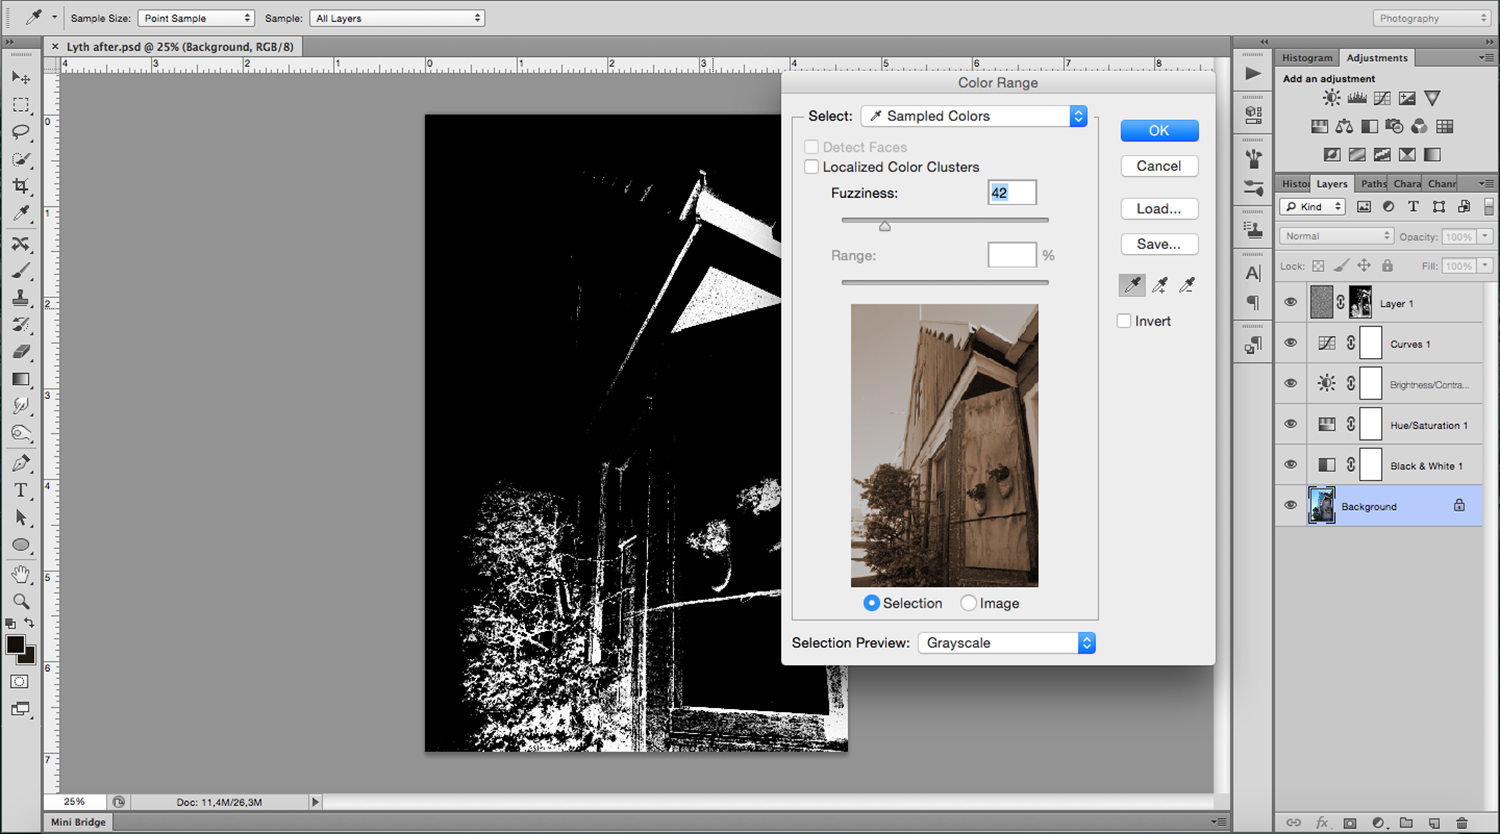 11 - How to Create a Lithography Effect Using Photoshop